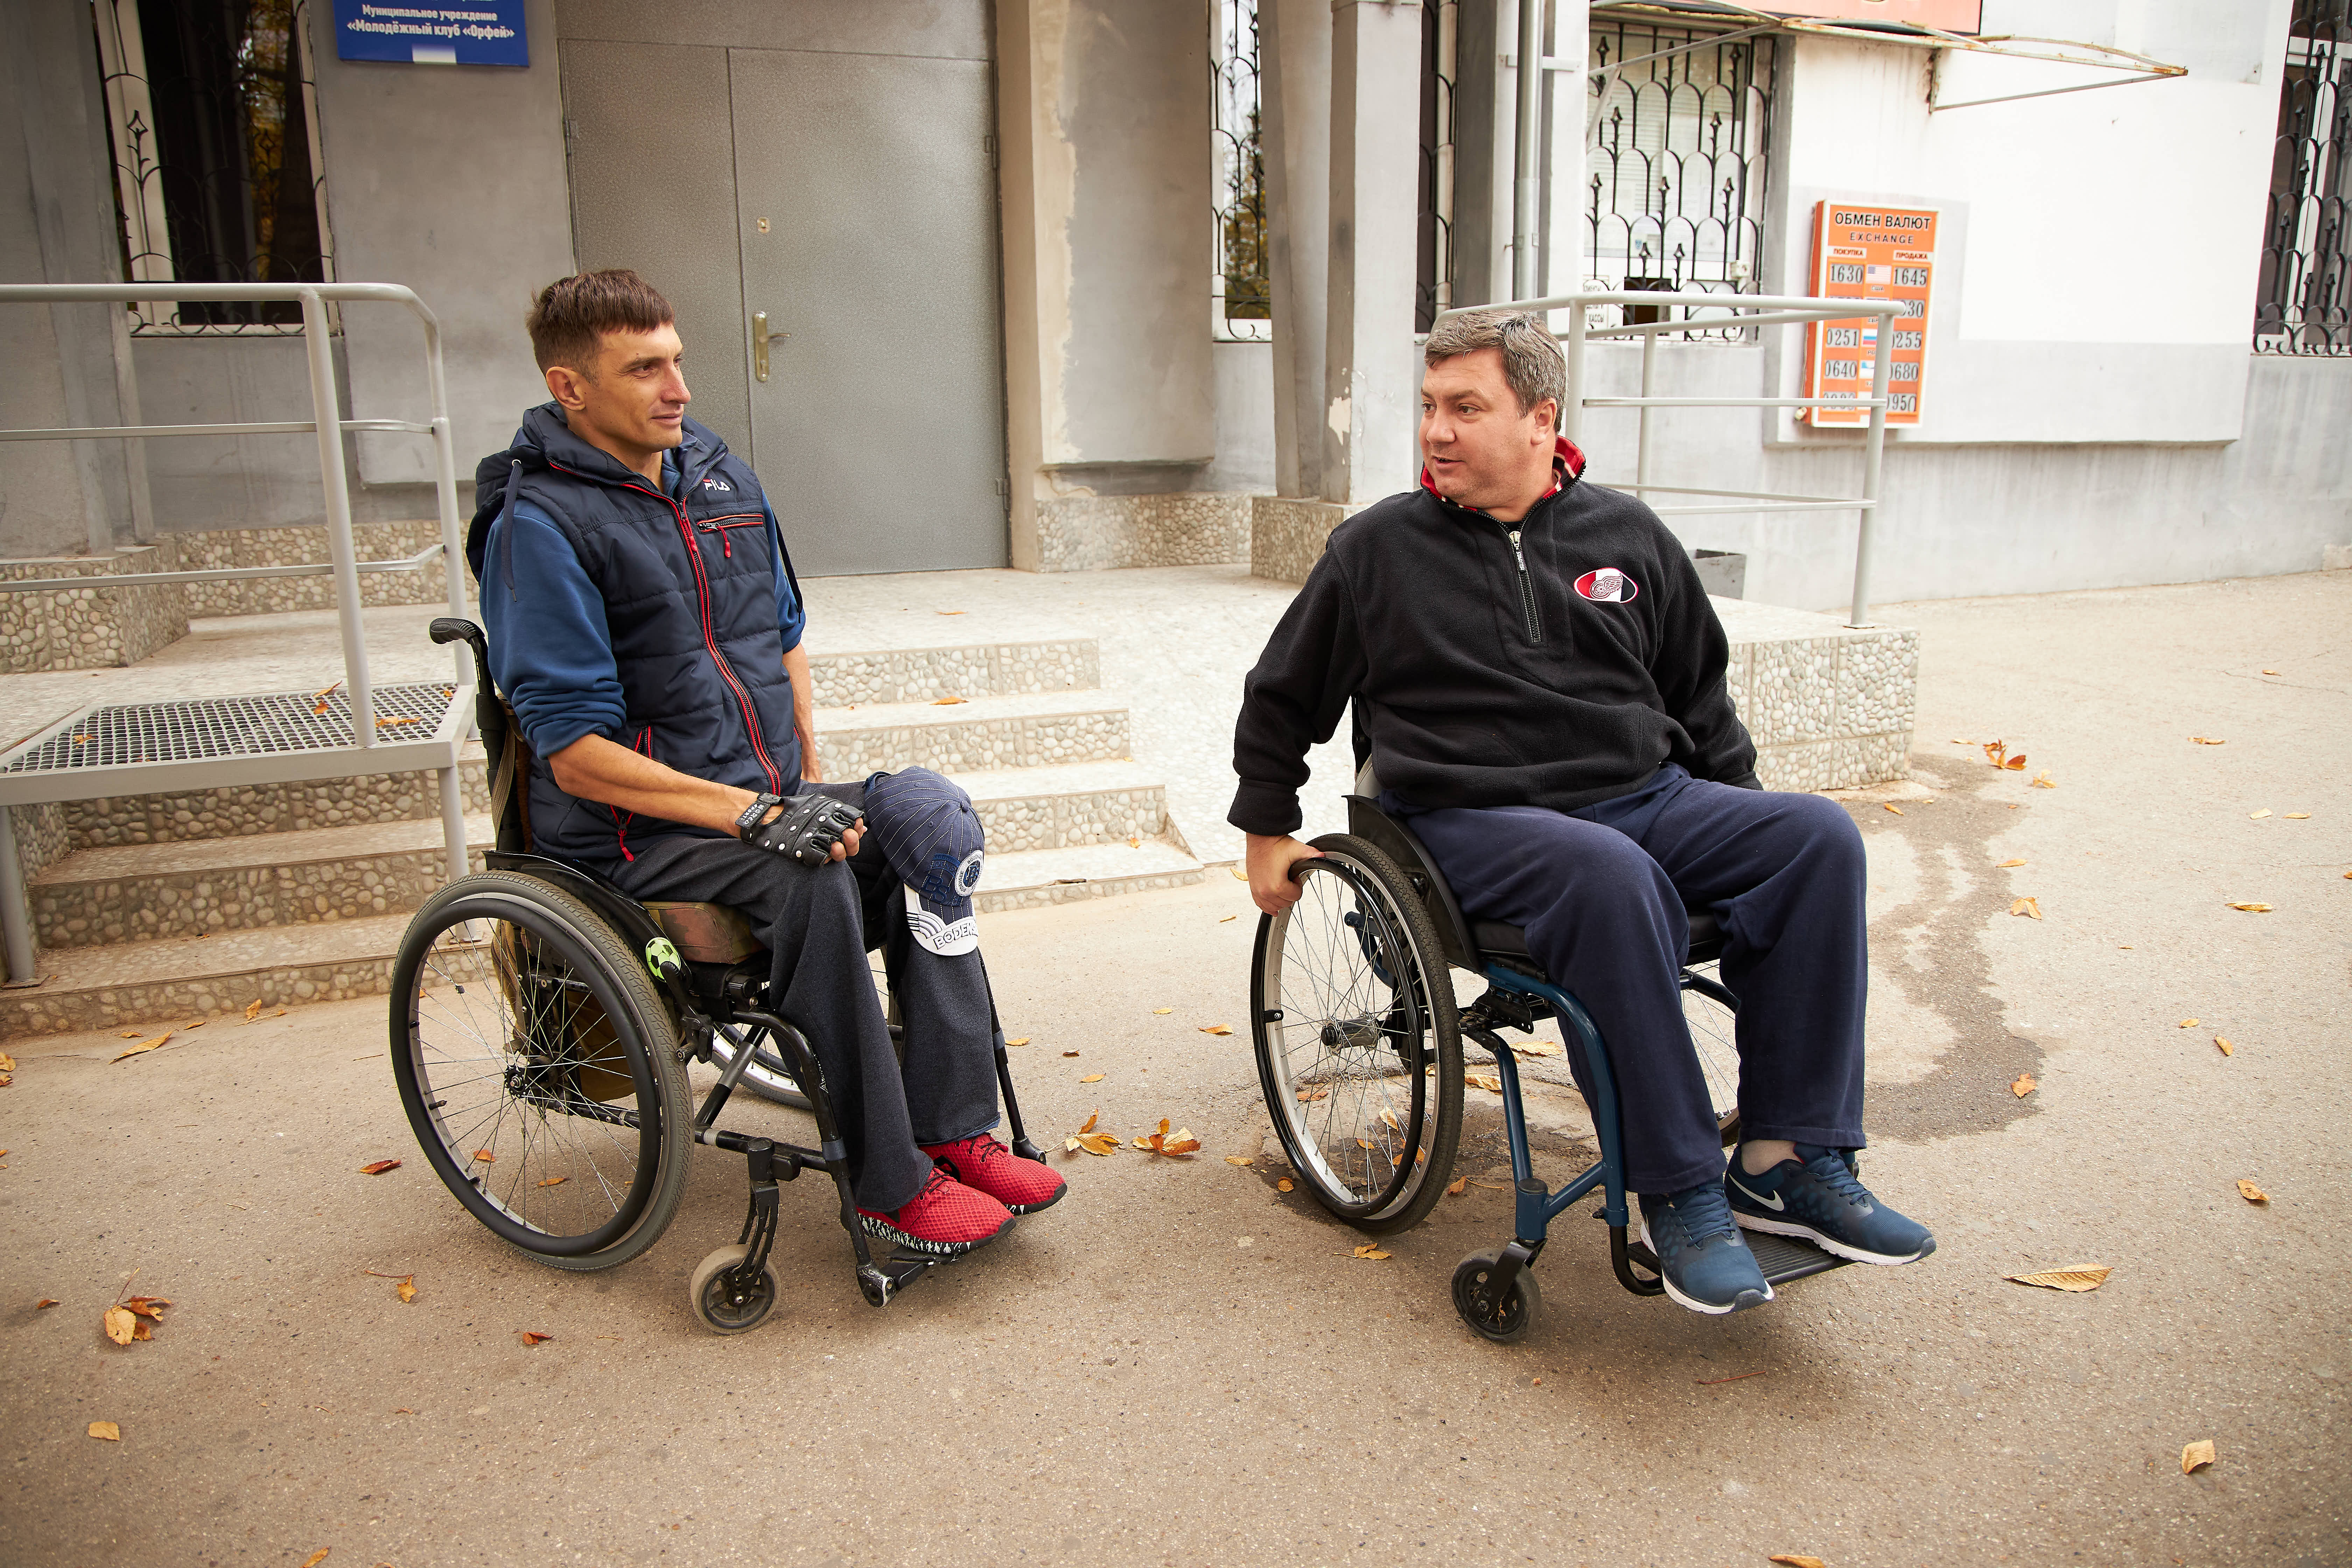 Through civic activism, Vitalii Slipcenco from Tiraspol transforms his environment into an accessible one for people with disabilities